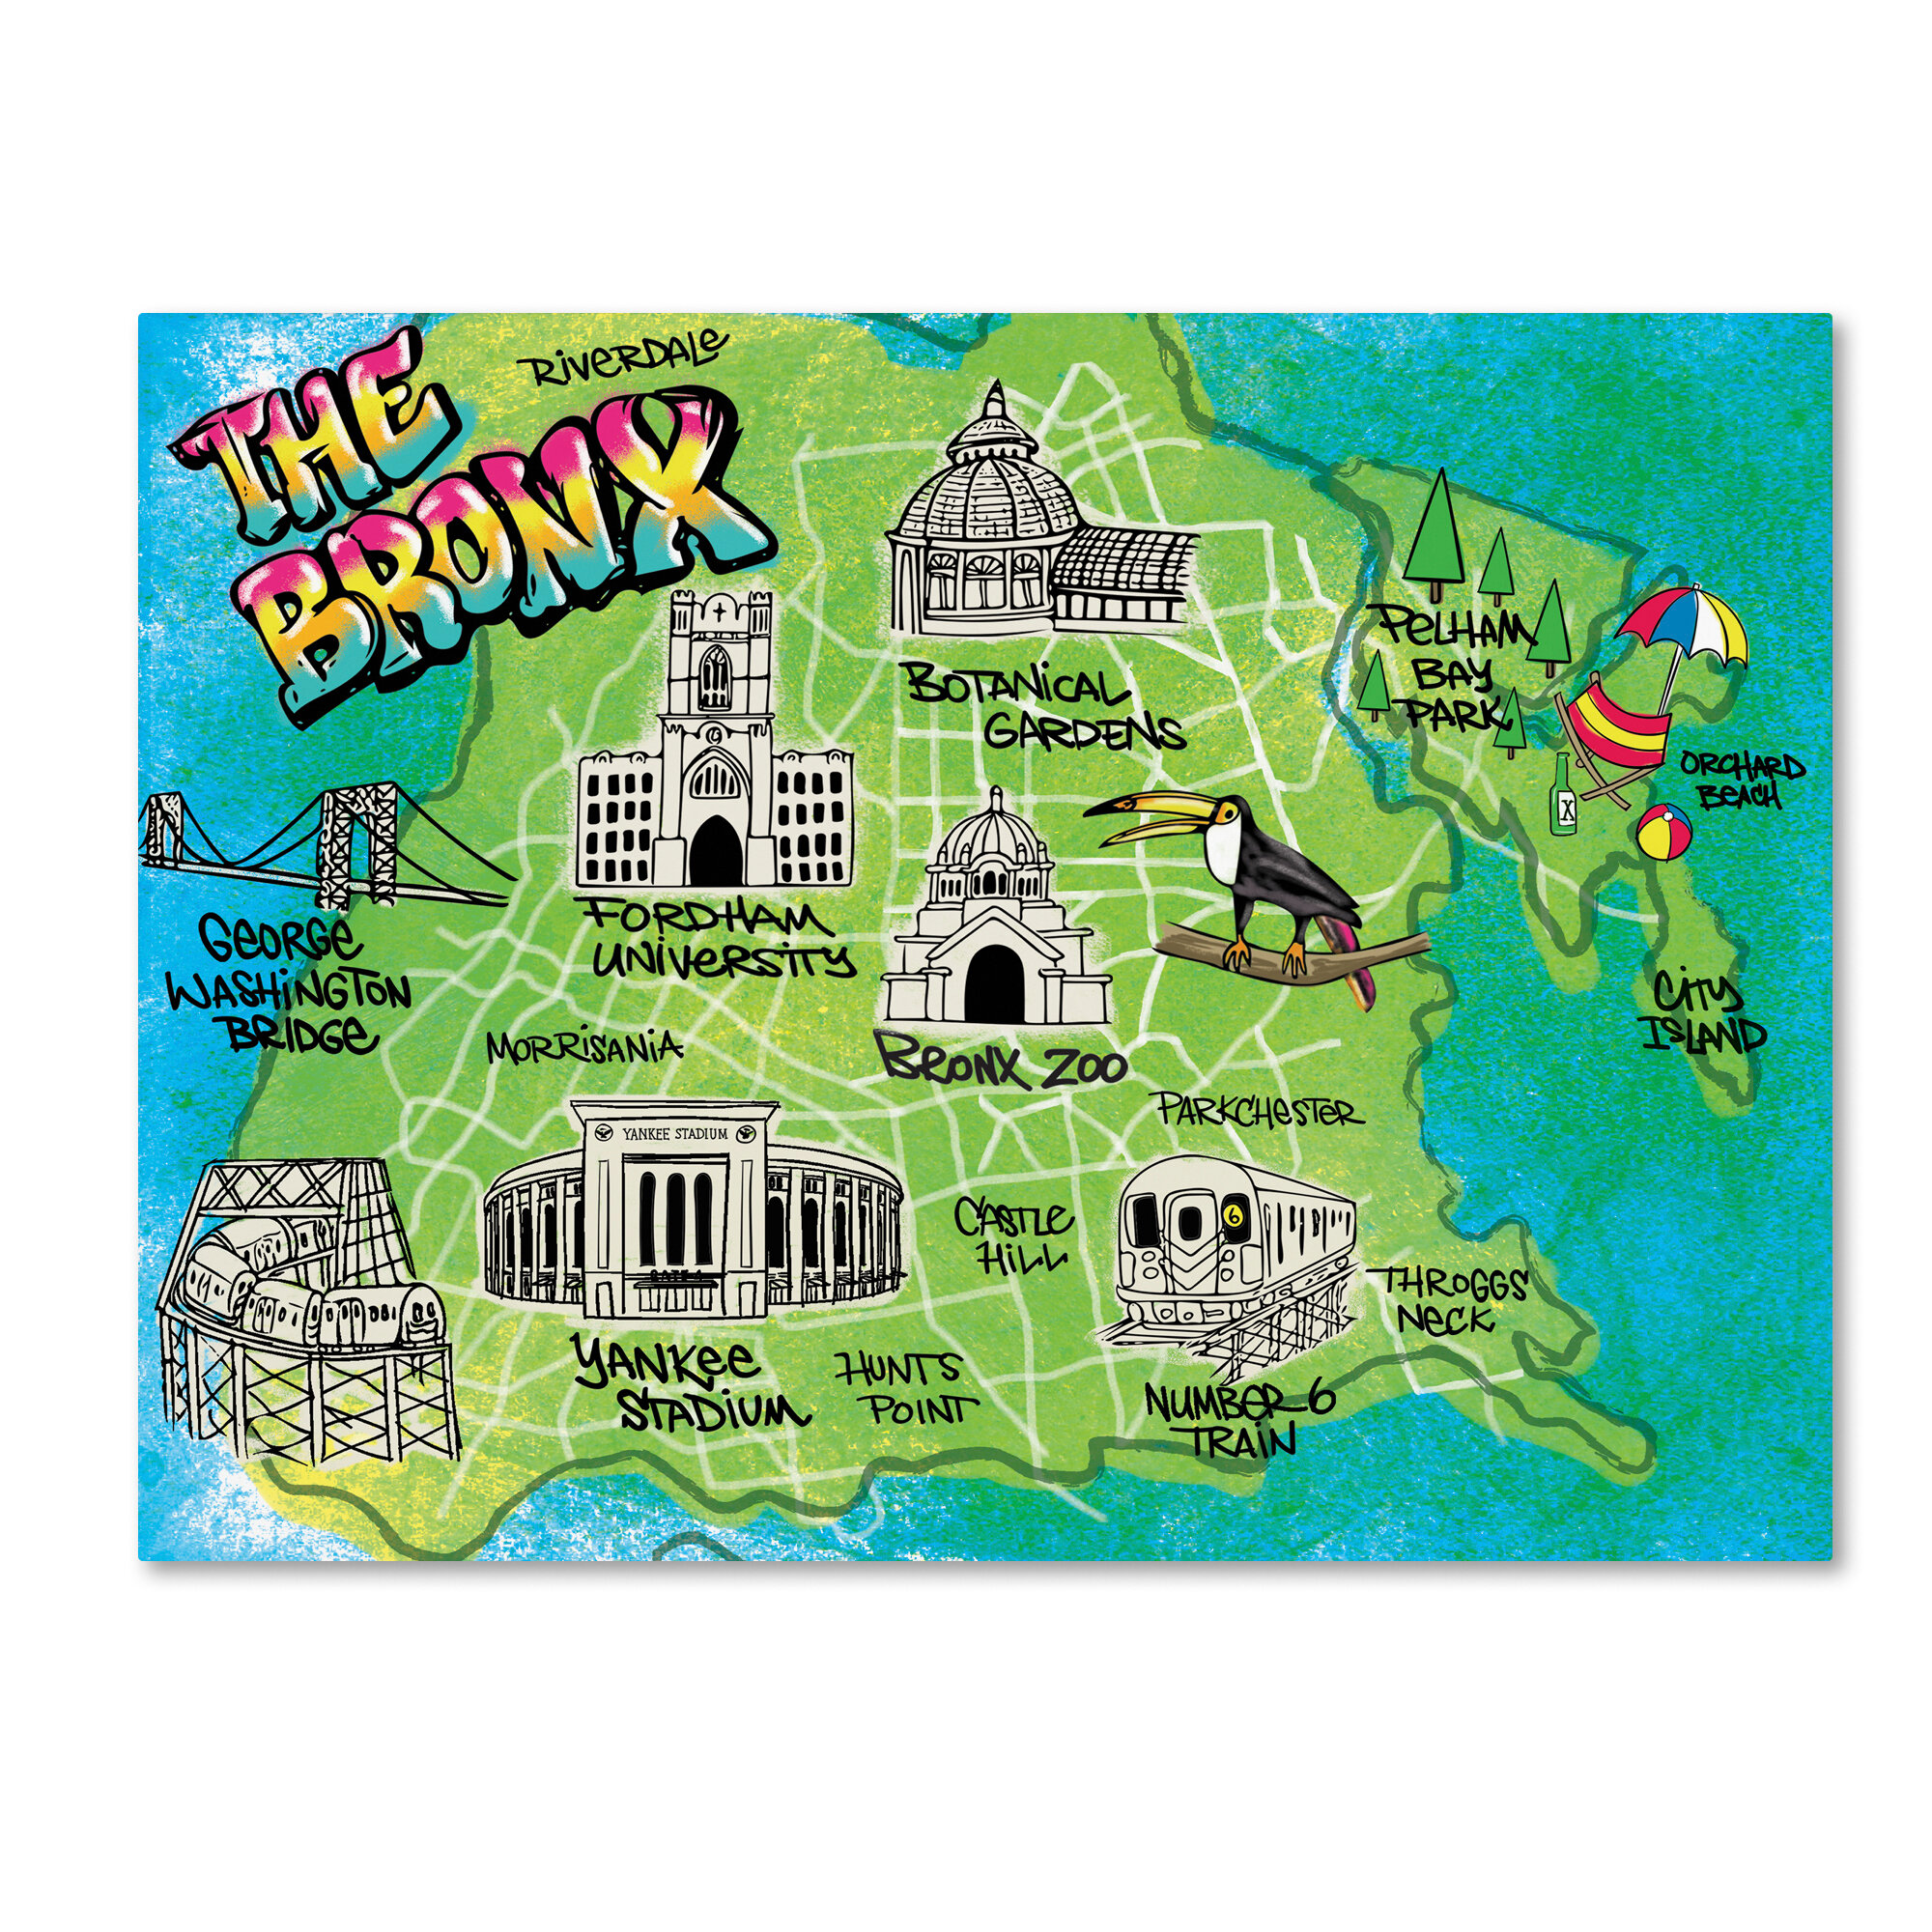 'Bronx Map' Graphic Art Print on Wrapped Canvas on ny aquarium map, south bronx map, brooklyn map, mta bronx bus route map, subway map, arthur avenue map, buffalo zoo ny map, prospect park map, american museum of natural history map, gun hill road map, zoo park map, wildlife safari map, arthur ave bronx ny map, bronx street map, woodlawn cemetery bronx map, manhattanhenge map, new york map, the bronx map, virginia zoological park map, central park map,